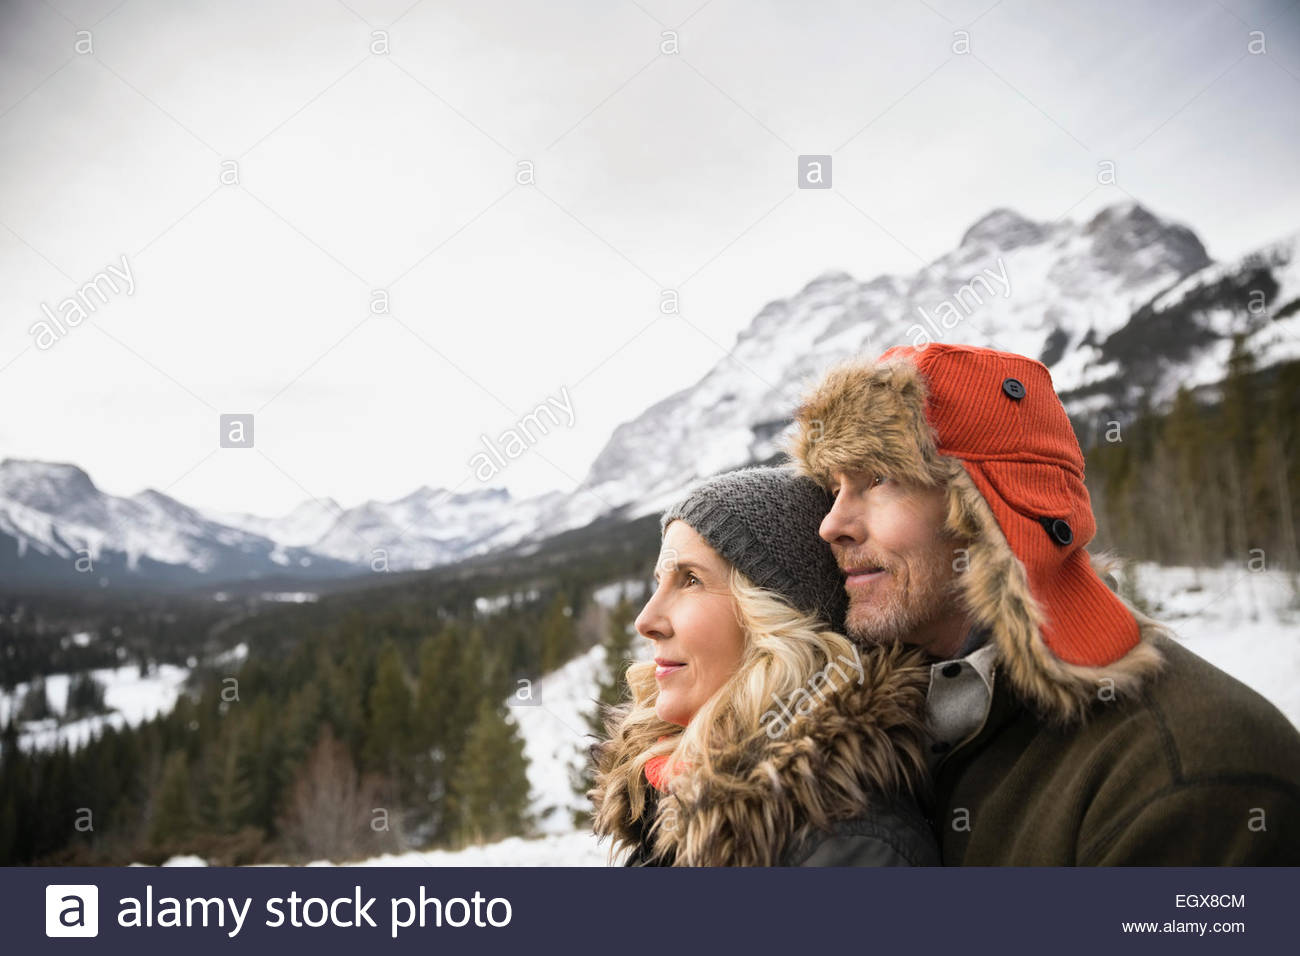 Serious couple looking away below snowy mountains - Stock Image